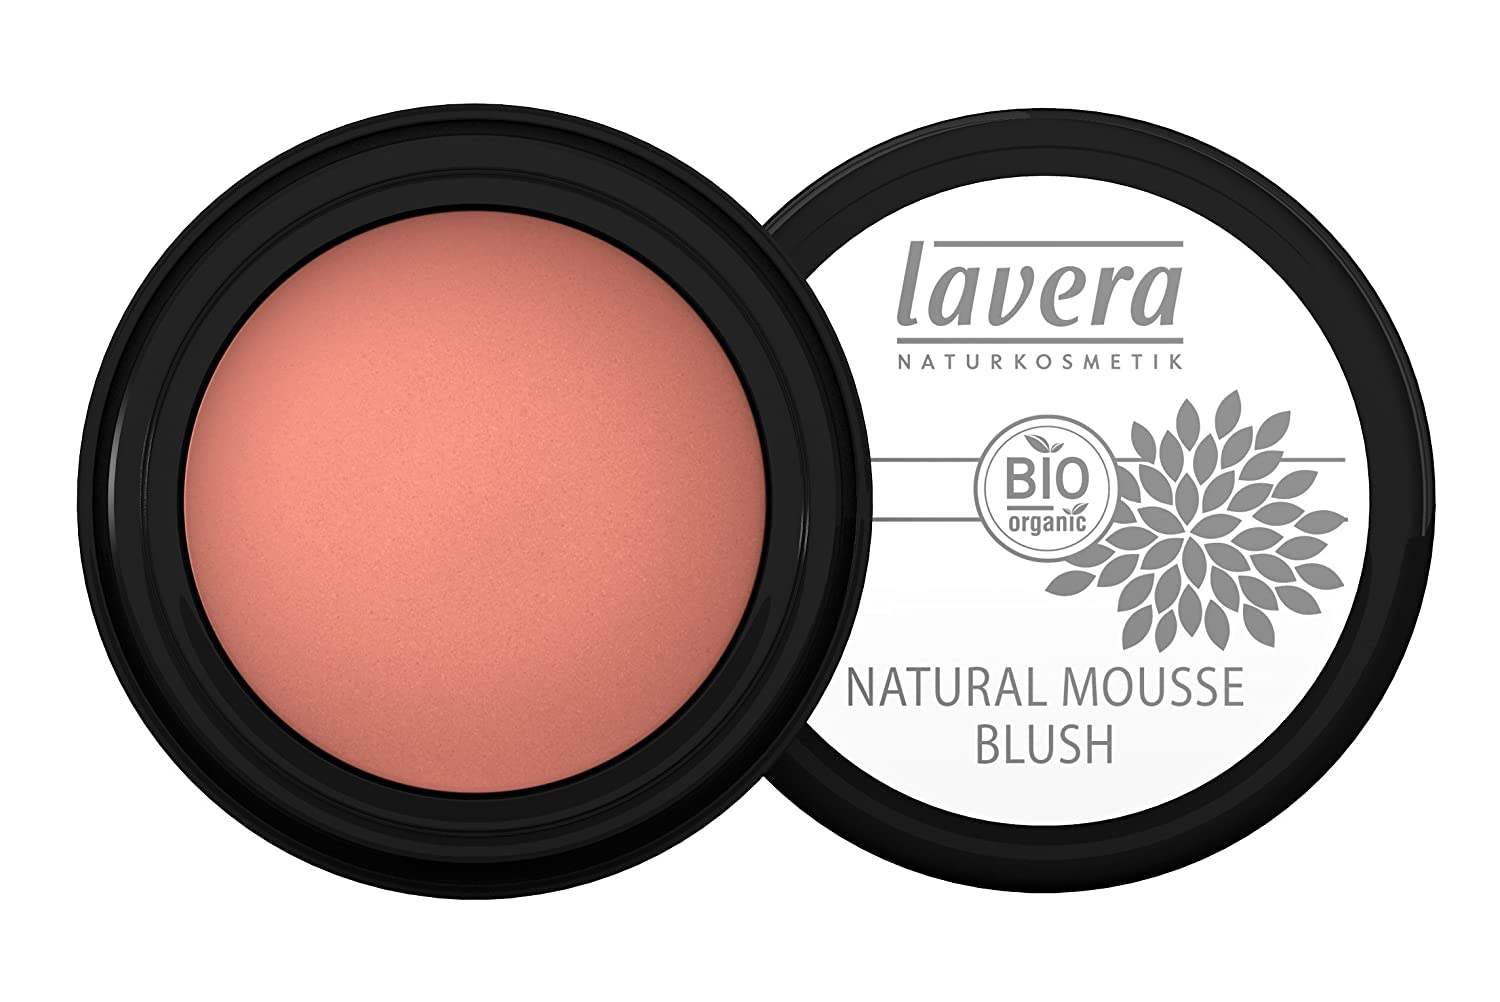 lavera Natural Mousse Blush ∙ Colour Classic Nude 01 ∙ Ultra light creamy Mousse ∙ Vegan ✔ Natural & Innovative Make up ✔ Organic Skin Care ✔ Colour Cosmetics ✔ BIO 4 g Laverana GmbH & Co. KG 106438